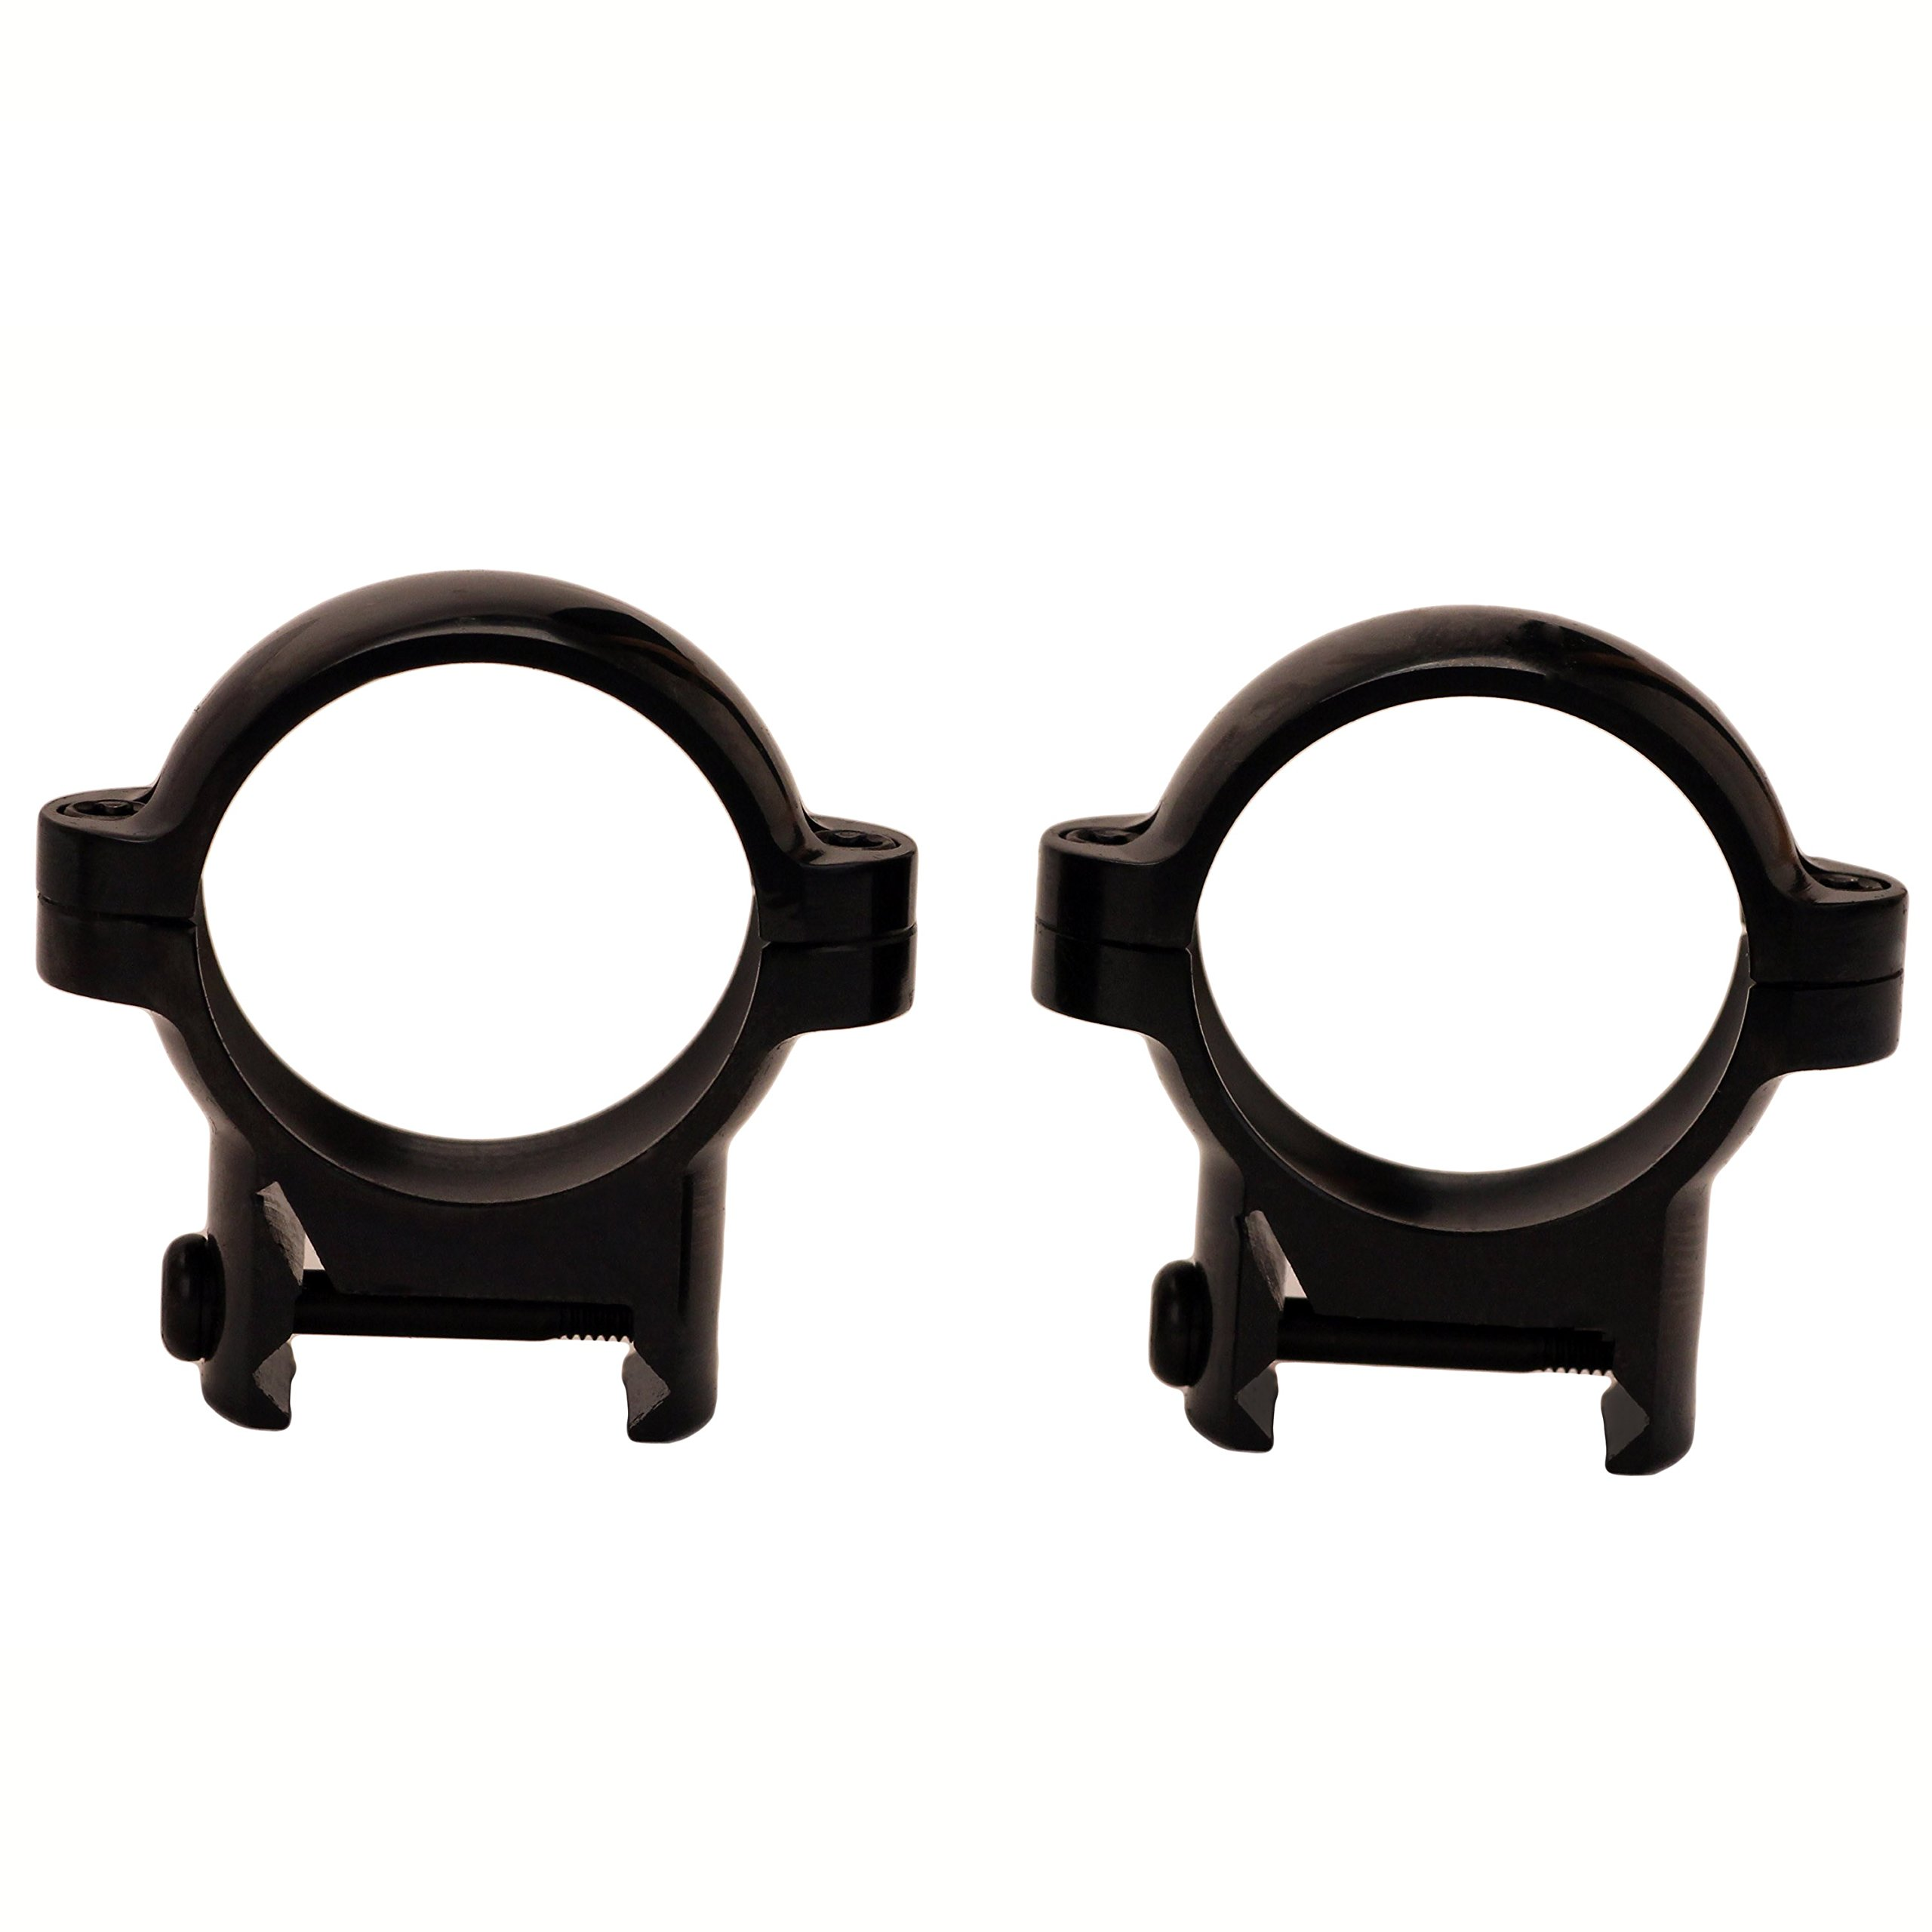 Burris Optics Signature Zee Rings, Steel, Pos-Align Inserts, Weaver Style - Mounting Accessories, Burris Rings Mount by Burris Optics